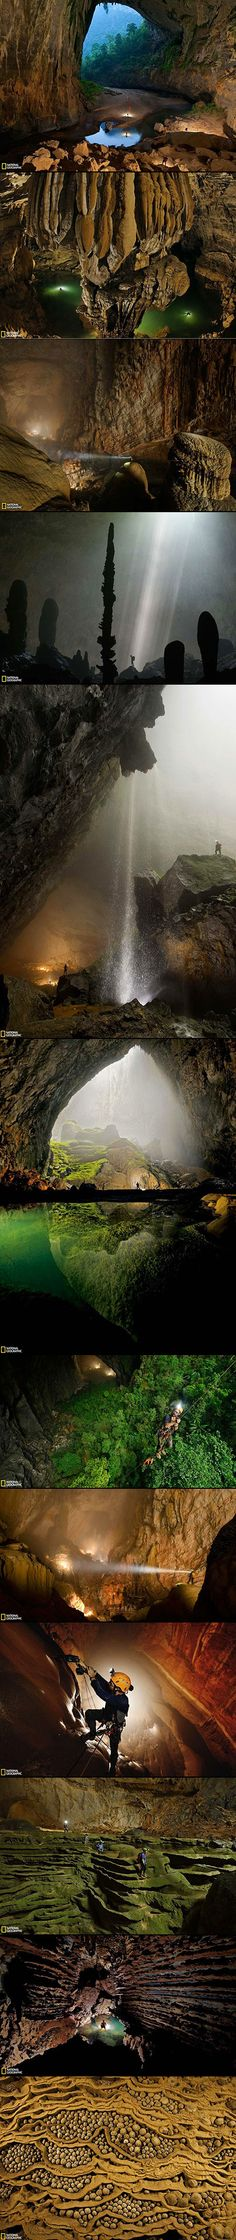 There are many things that make the Son Doong Cave in Vietnam a remarkable natural wonder; at about 9km in length, 200m in width and 150m in height, it is the largest cave in the world, with caverns capable of fitting entire city streets and skyscrapers. It is home to a river, jungles, and entire cave ecosystems. Only slightly less remarkable is the fact that, until 2009, we did not even know how grandiose and impressive Son Doong (or Mountain River) Cave really is.